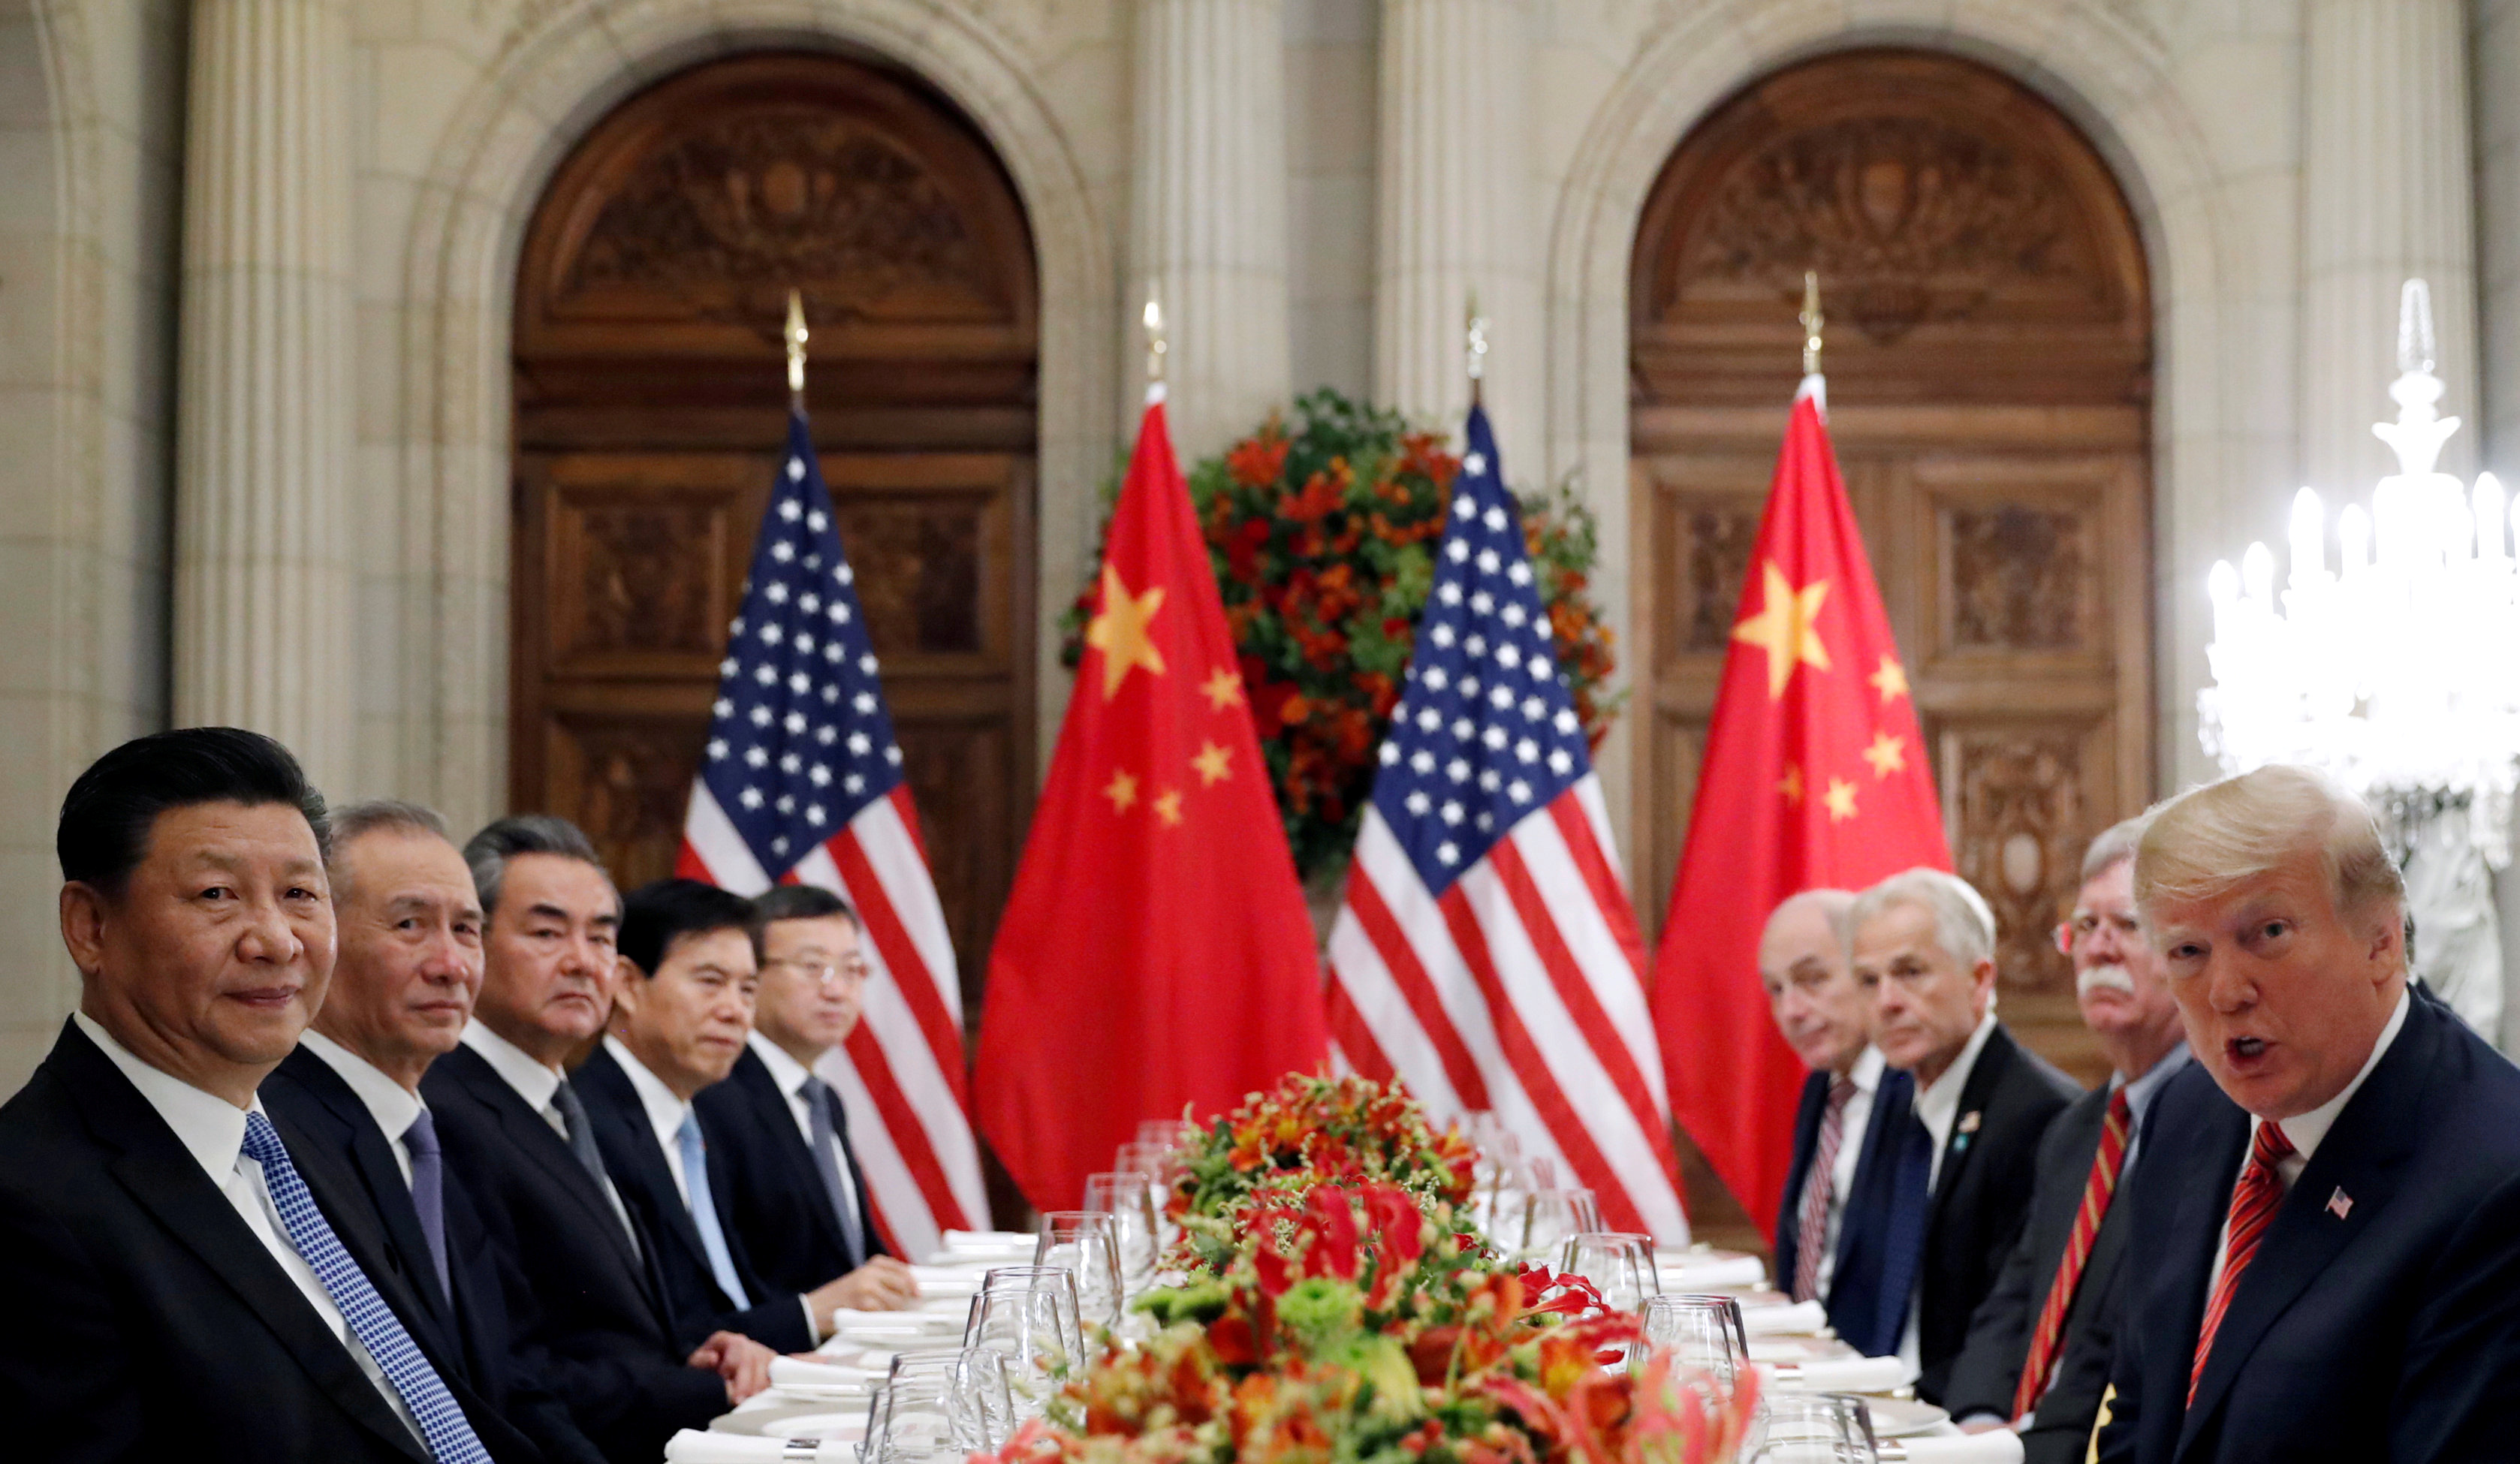 Trump won't soften hardline on China to make trade deal: advisers